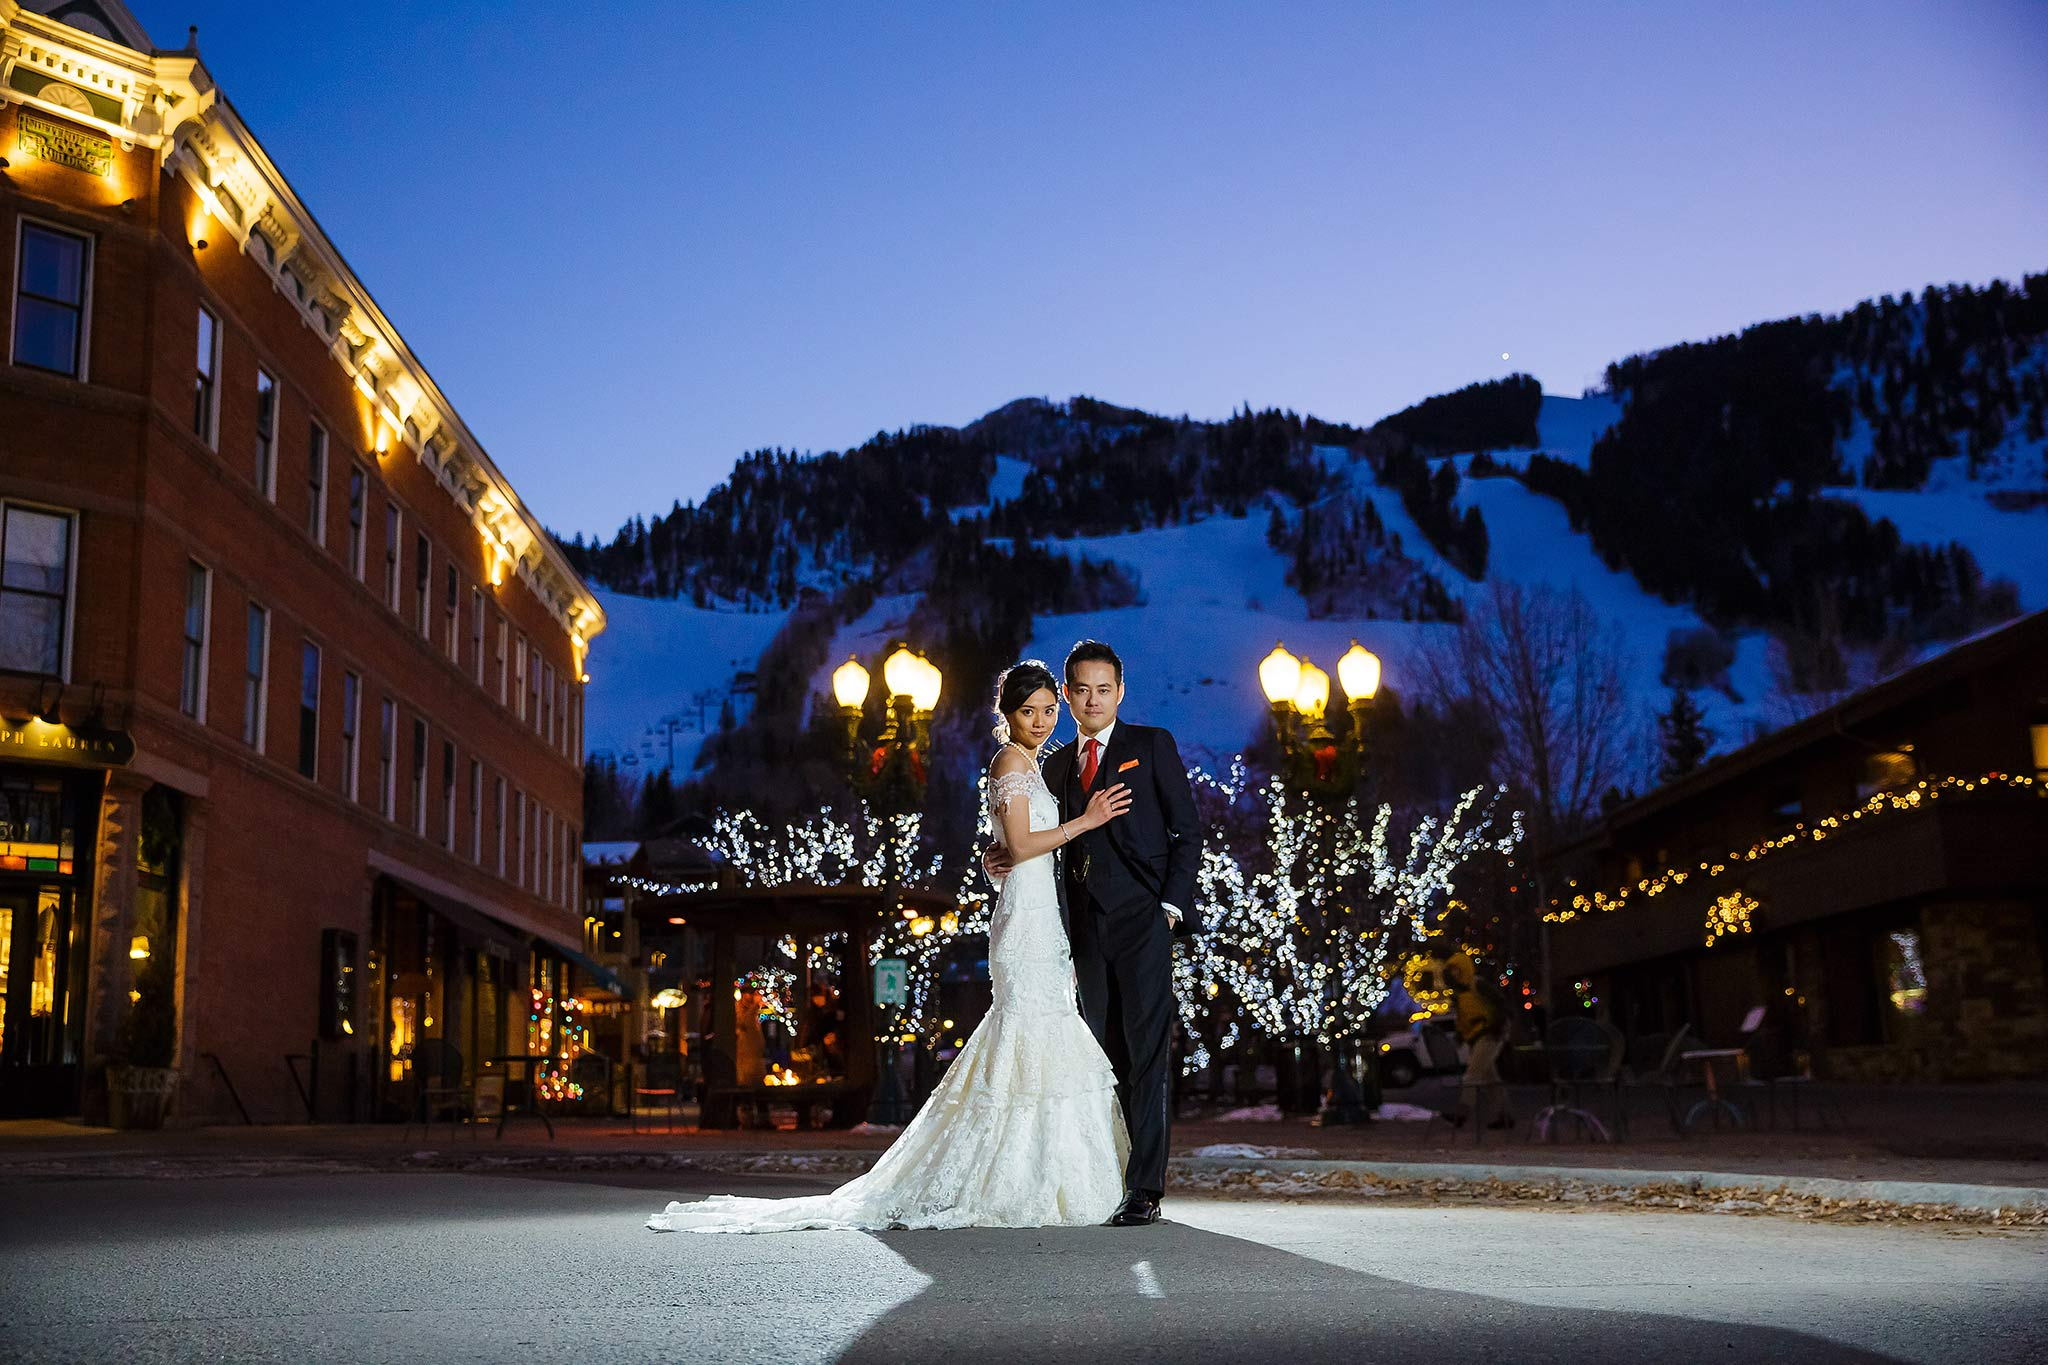 Bride and groom after wedding in downtown Aspen, CO